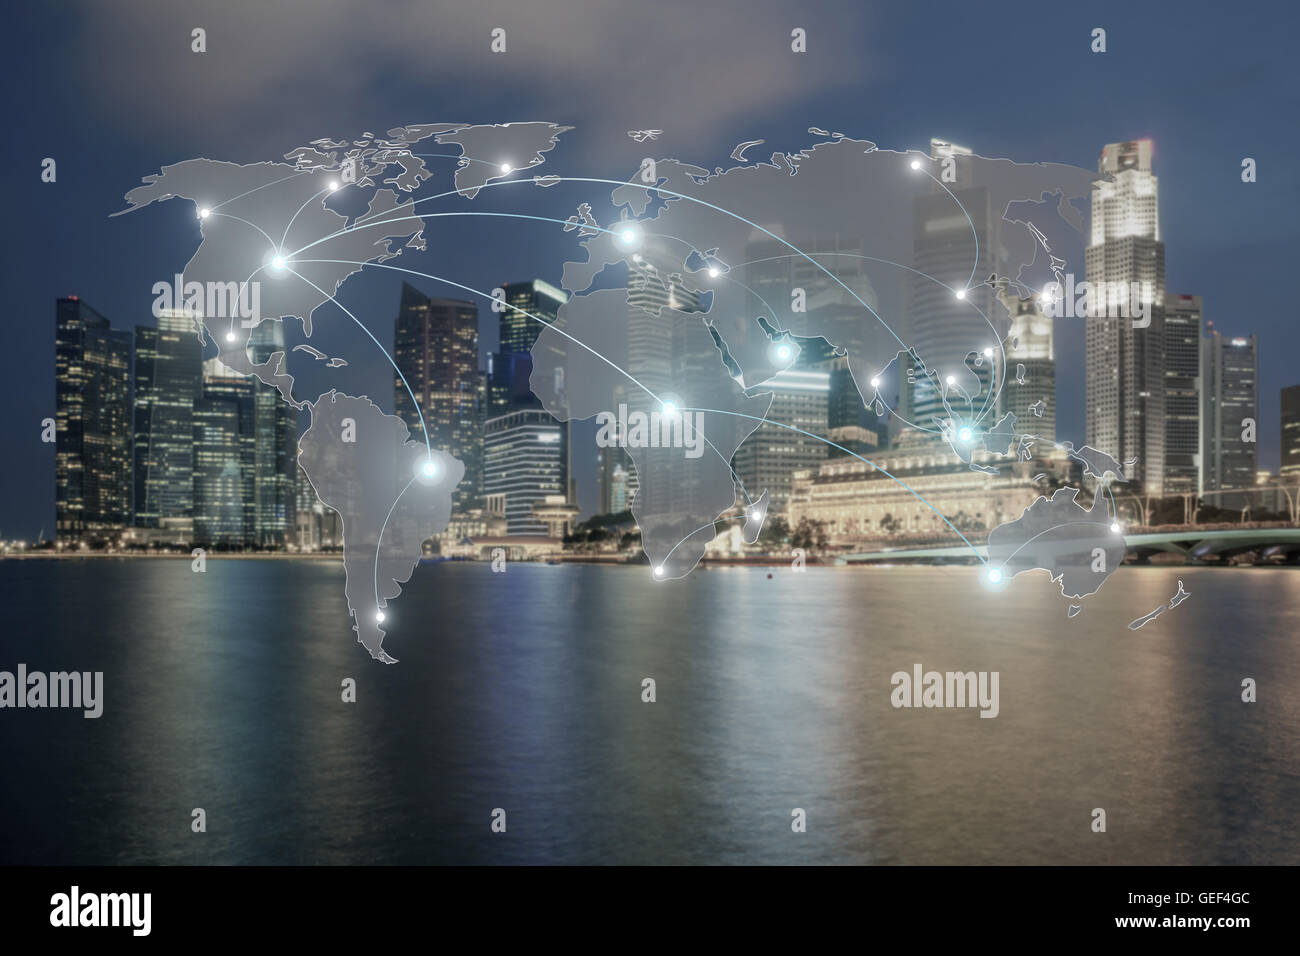 Network and world map on blur city use for global network partners background.(Elements of this image furnished Stock Photo